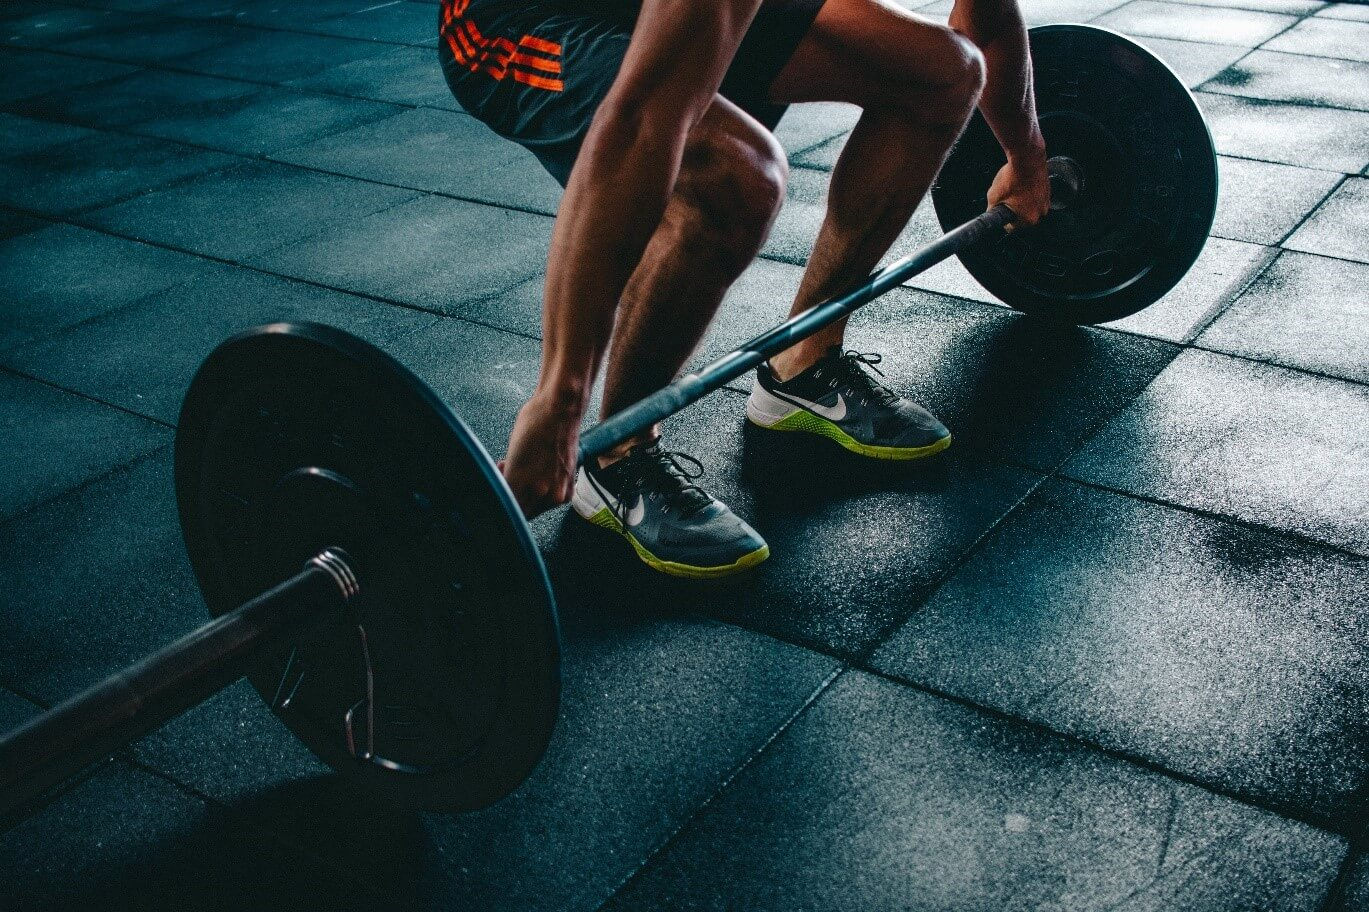 man in a gym lifting barbell weights